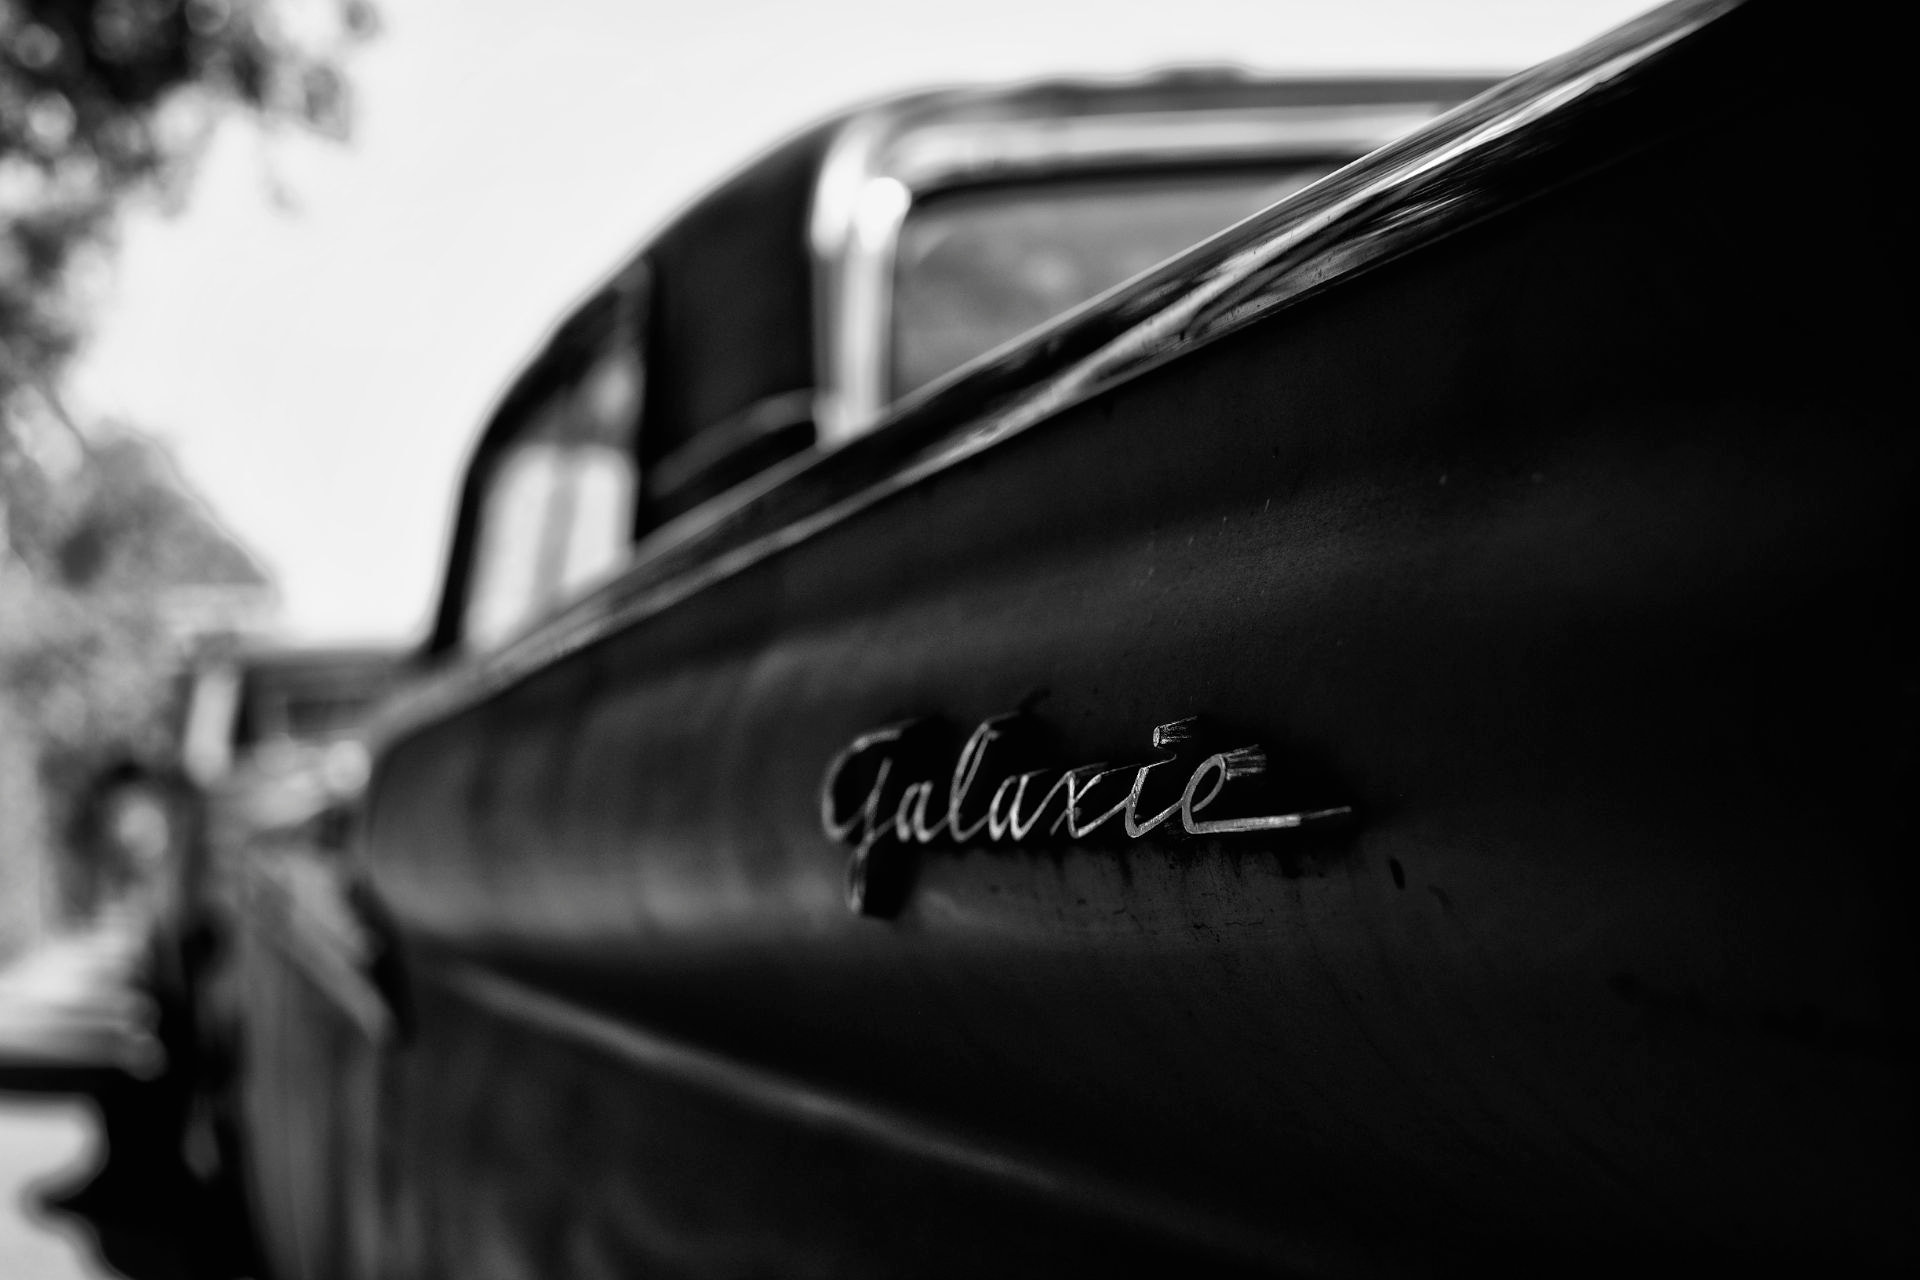 Photograph Galaxie by simon peckham on 500px